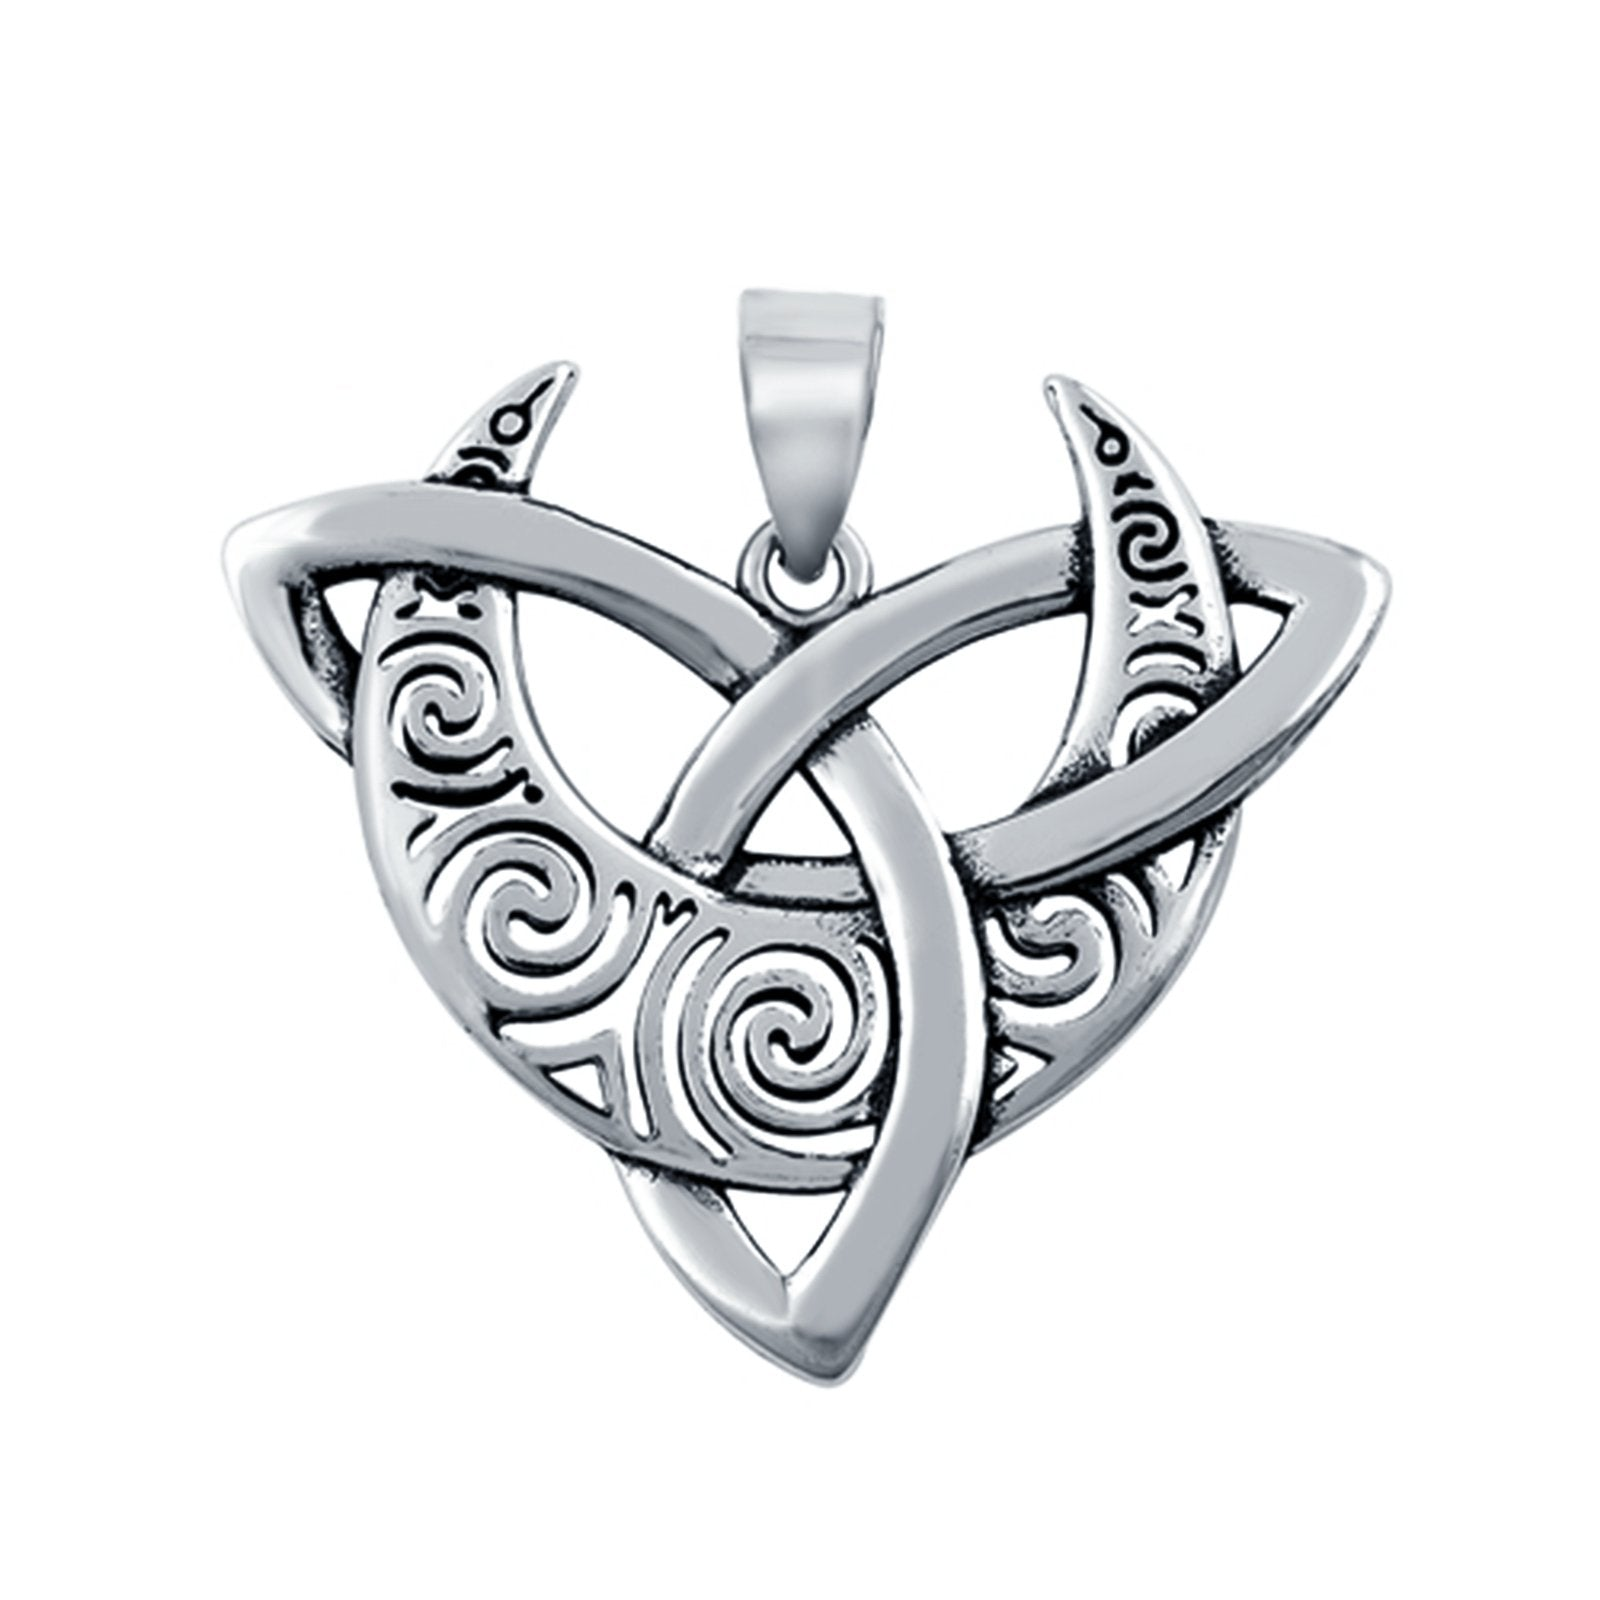 925 Sterling Silver Triskelion Moon Charm Pendant Fashion Jewelry